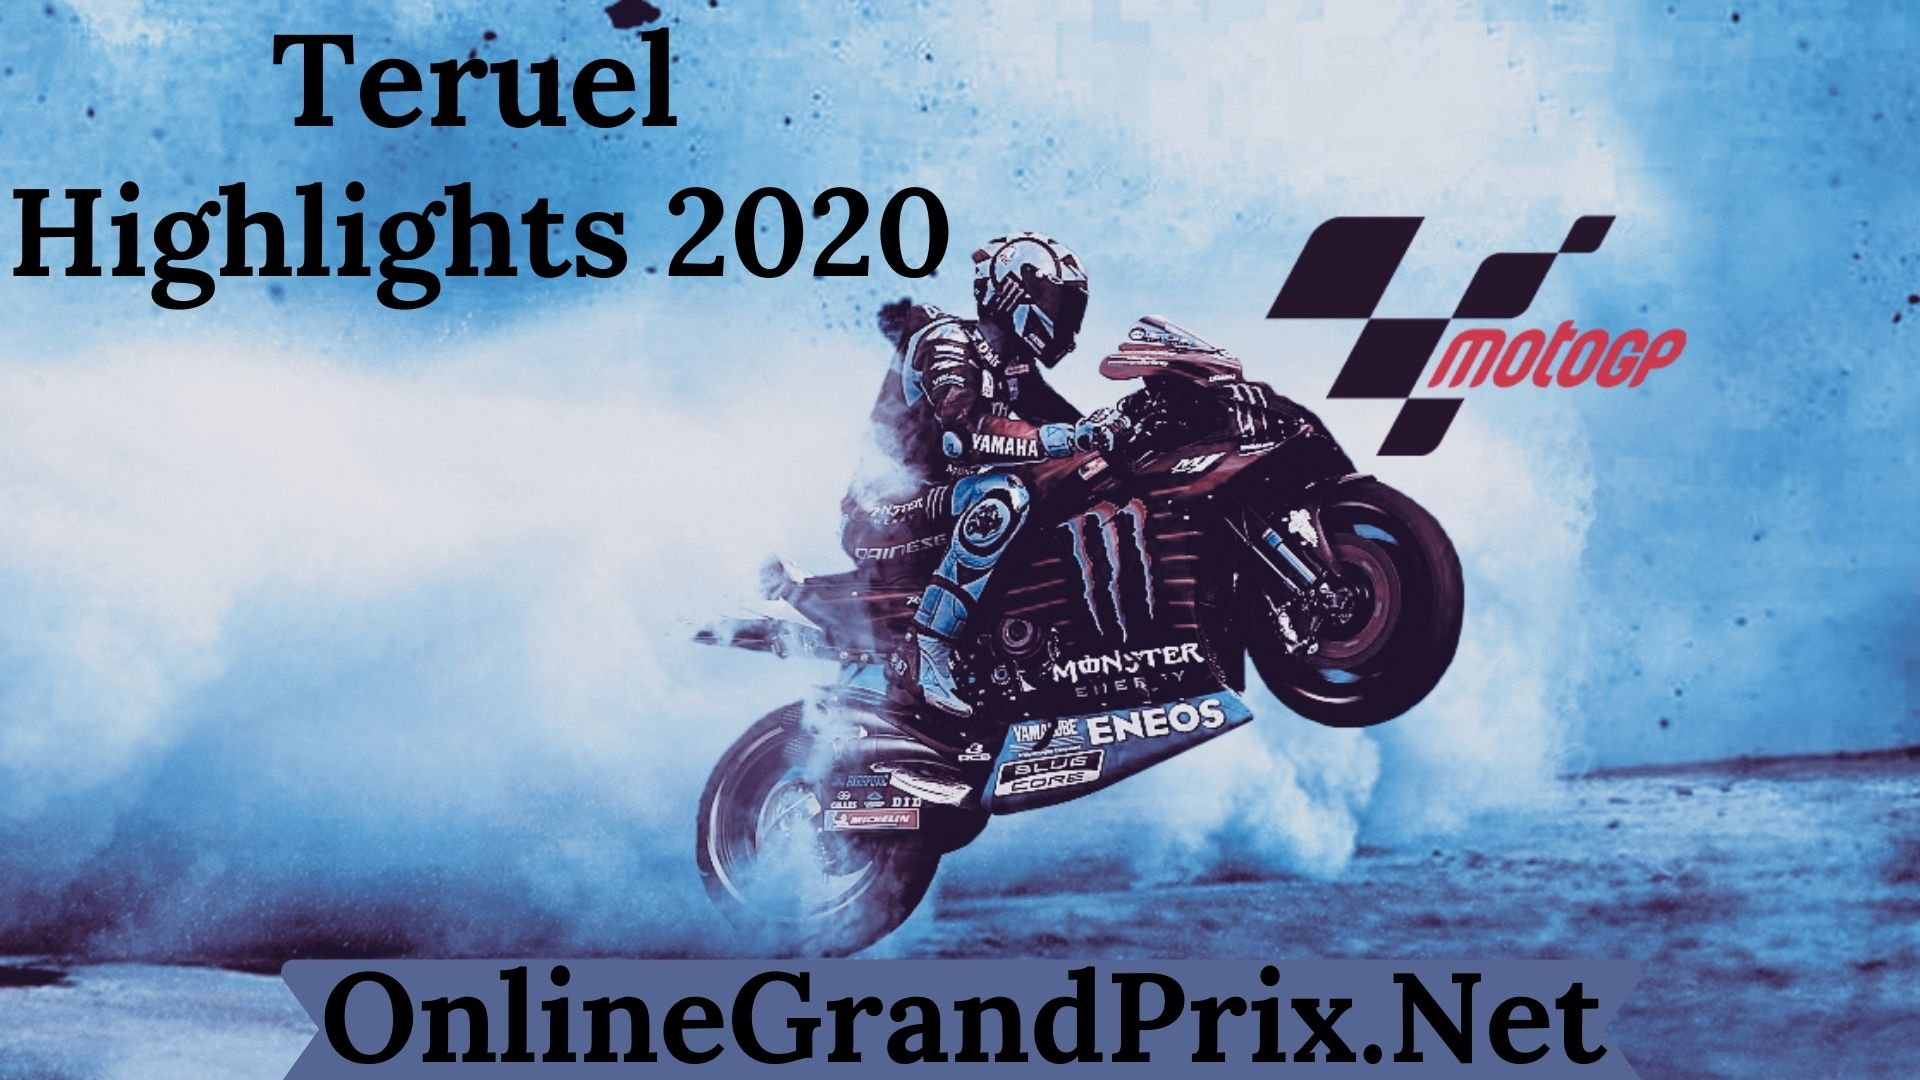 Teruel MotoGP Highlights 2020